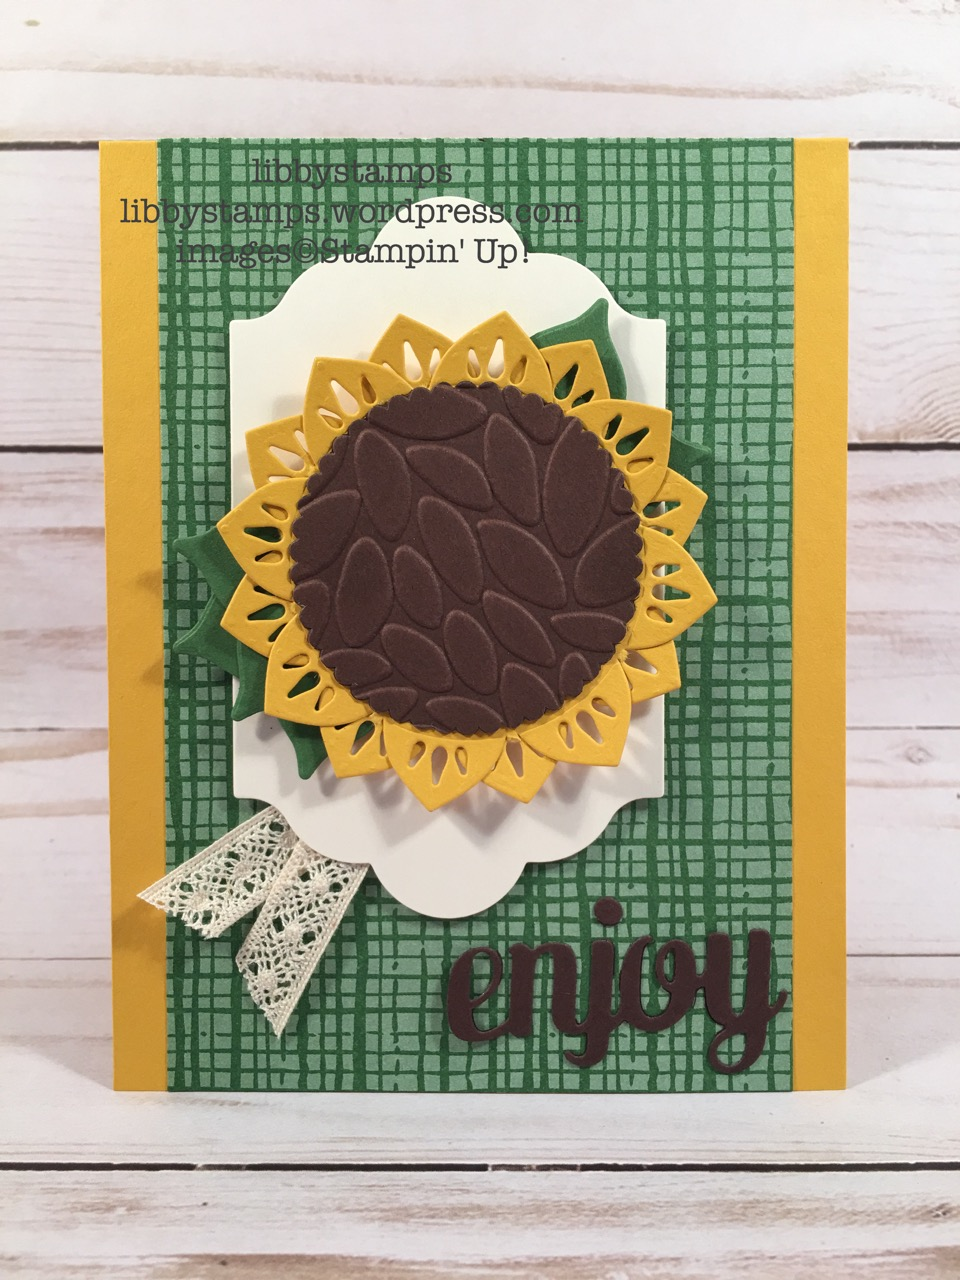 libbystamps, stampin up, Eastern Medallions Thinlits, Lots of Labels Framelits, Layering Circles Framelits, Mini Treat Bag Thinlits, Petal Burst Embossing Folder, This Christmas DSP, Venetian Crochet Trim